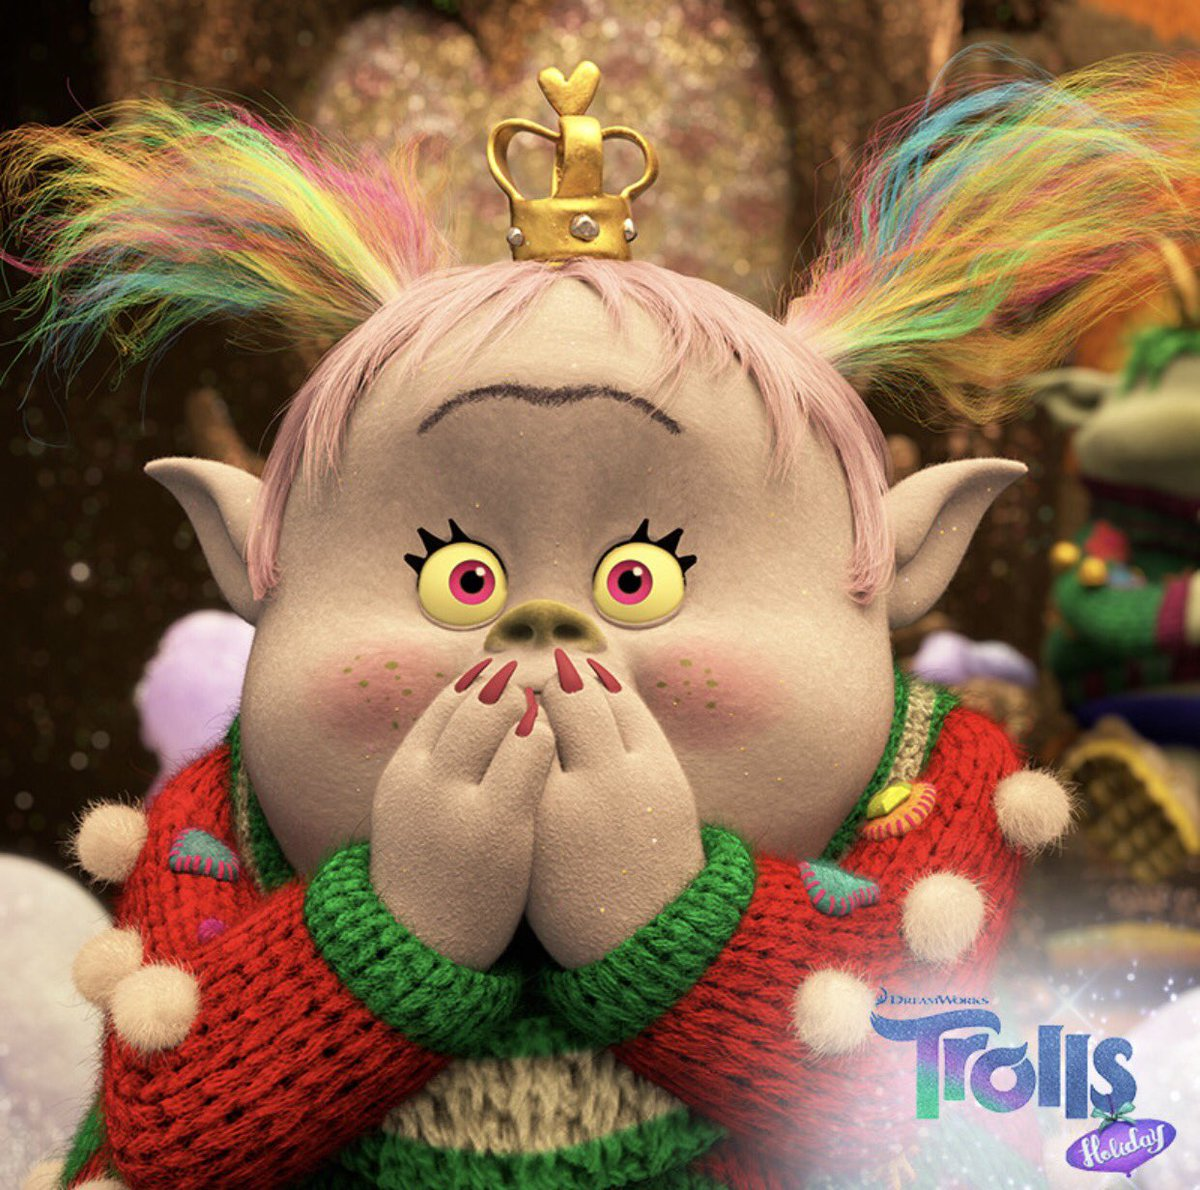 It's time to celebrate! #TrollsHoliday airs tonight on @NBC at 8:30/7:30c https://t.co/JoPVK8tay9